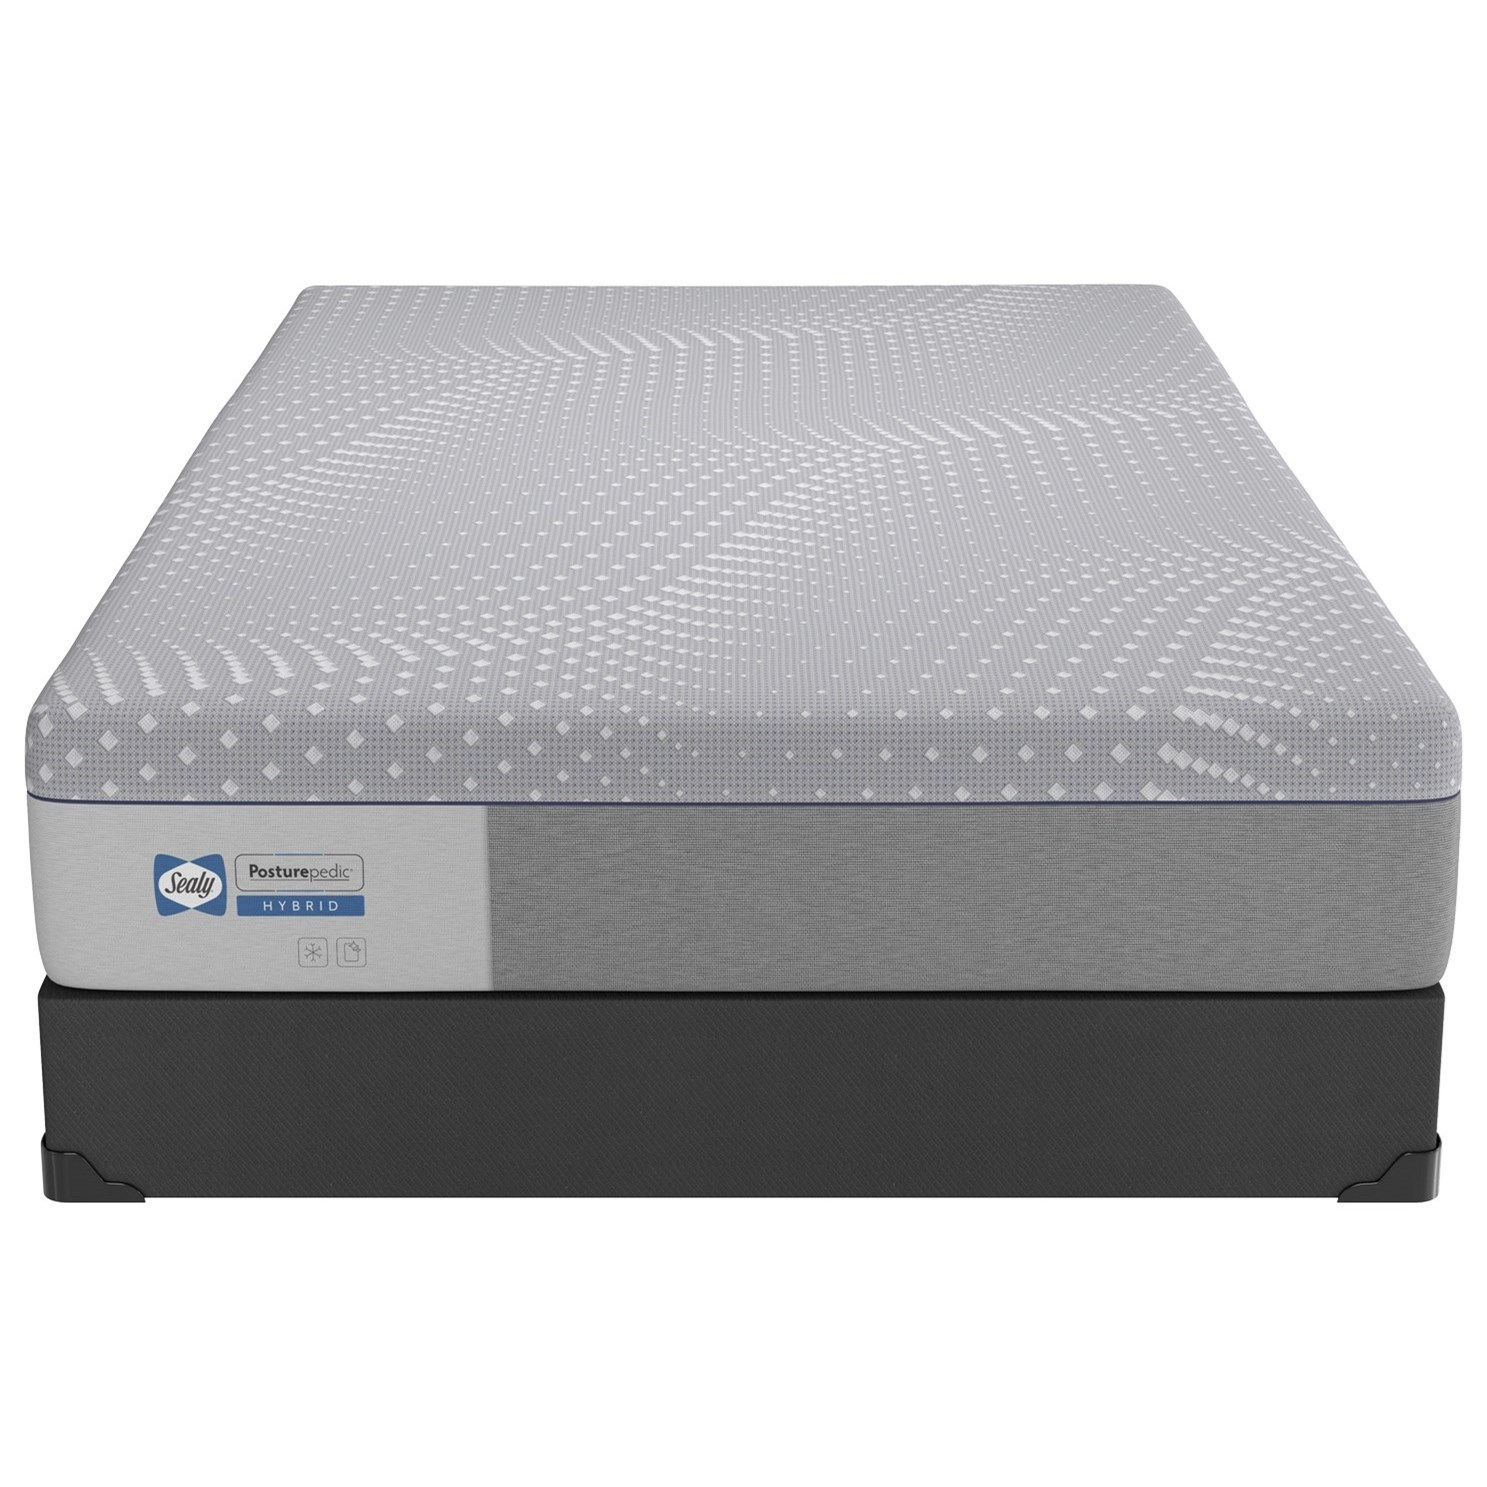 Sealy Hybrid TwinXL Lacey Soft+Standard Base by Sealy at Crowley Furniture & Mattress